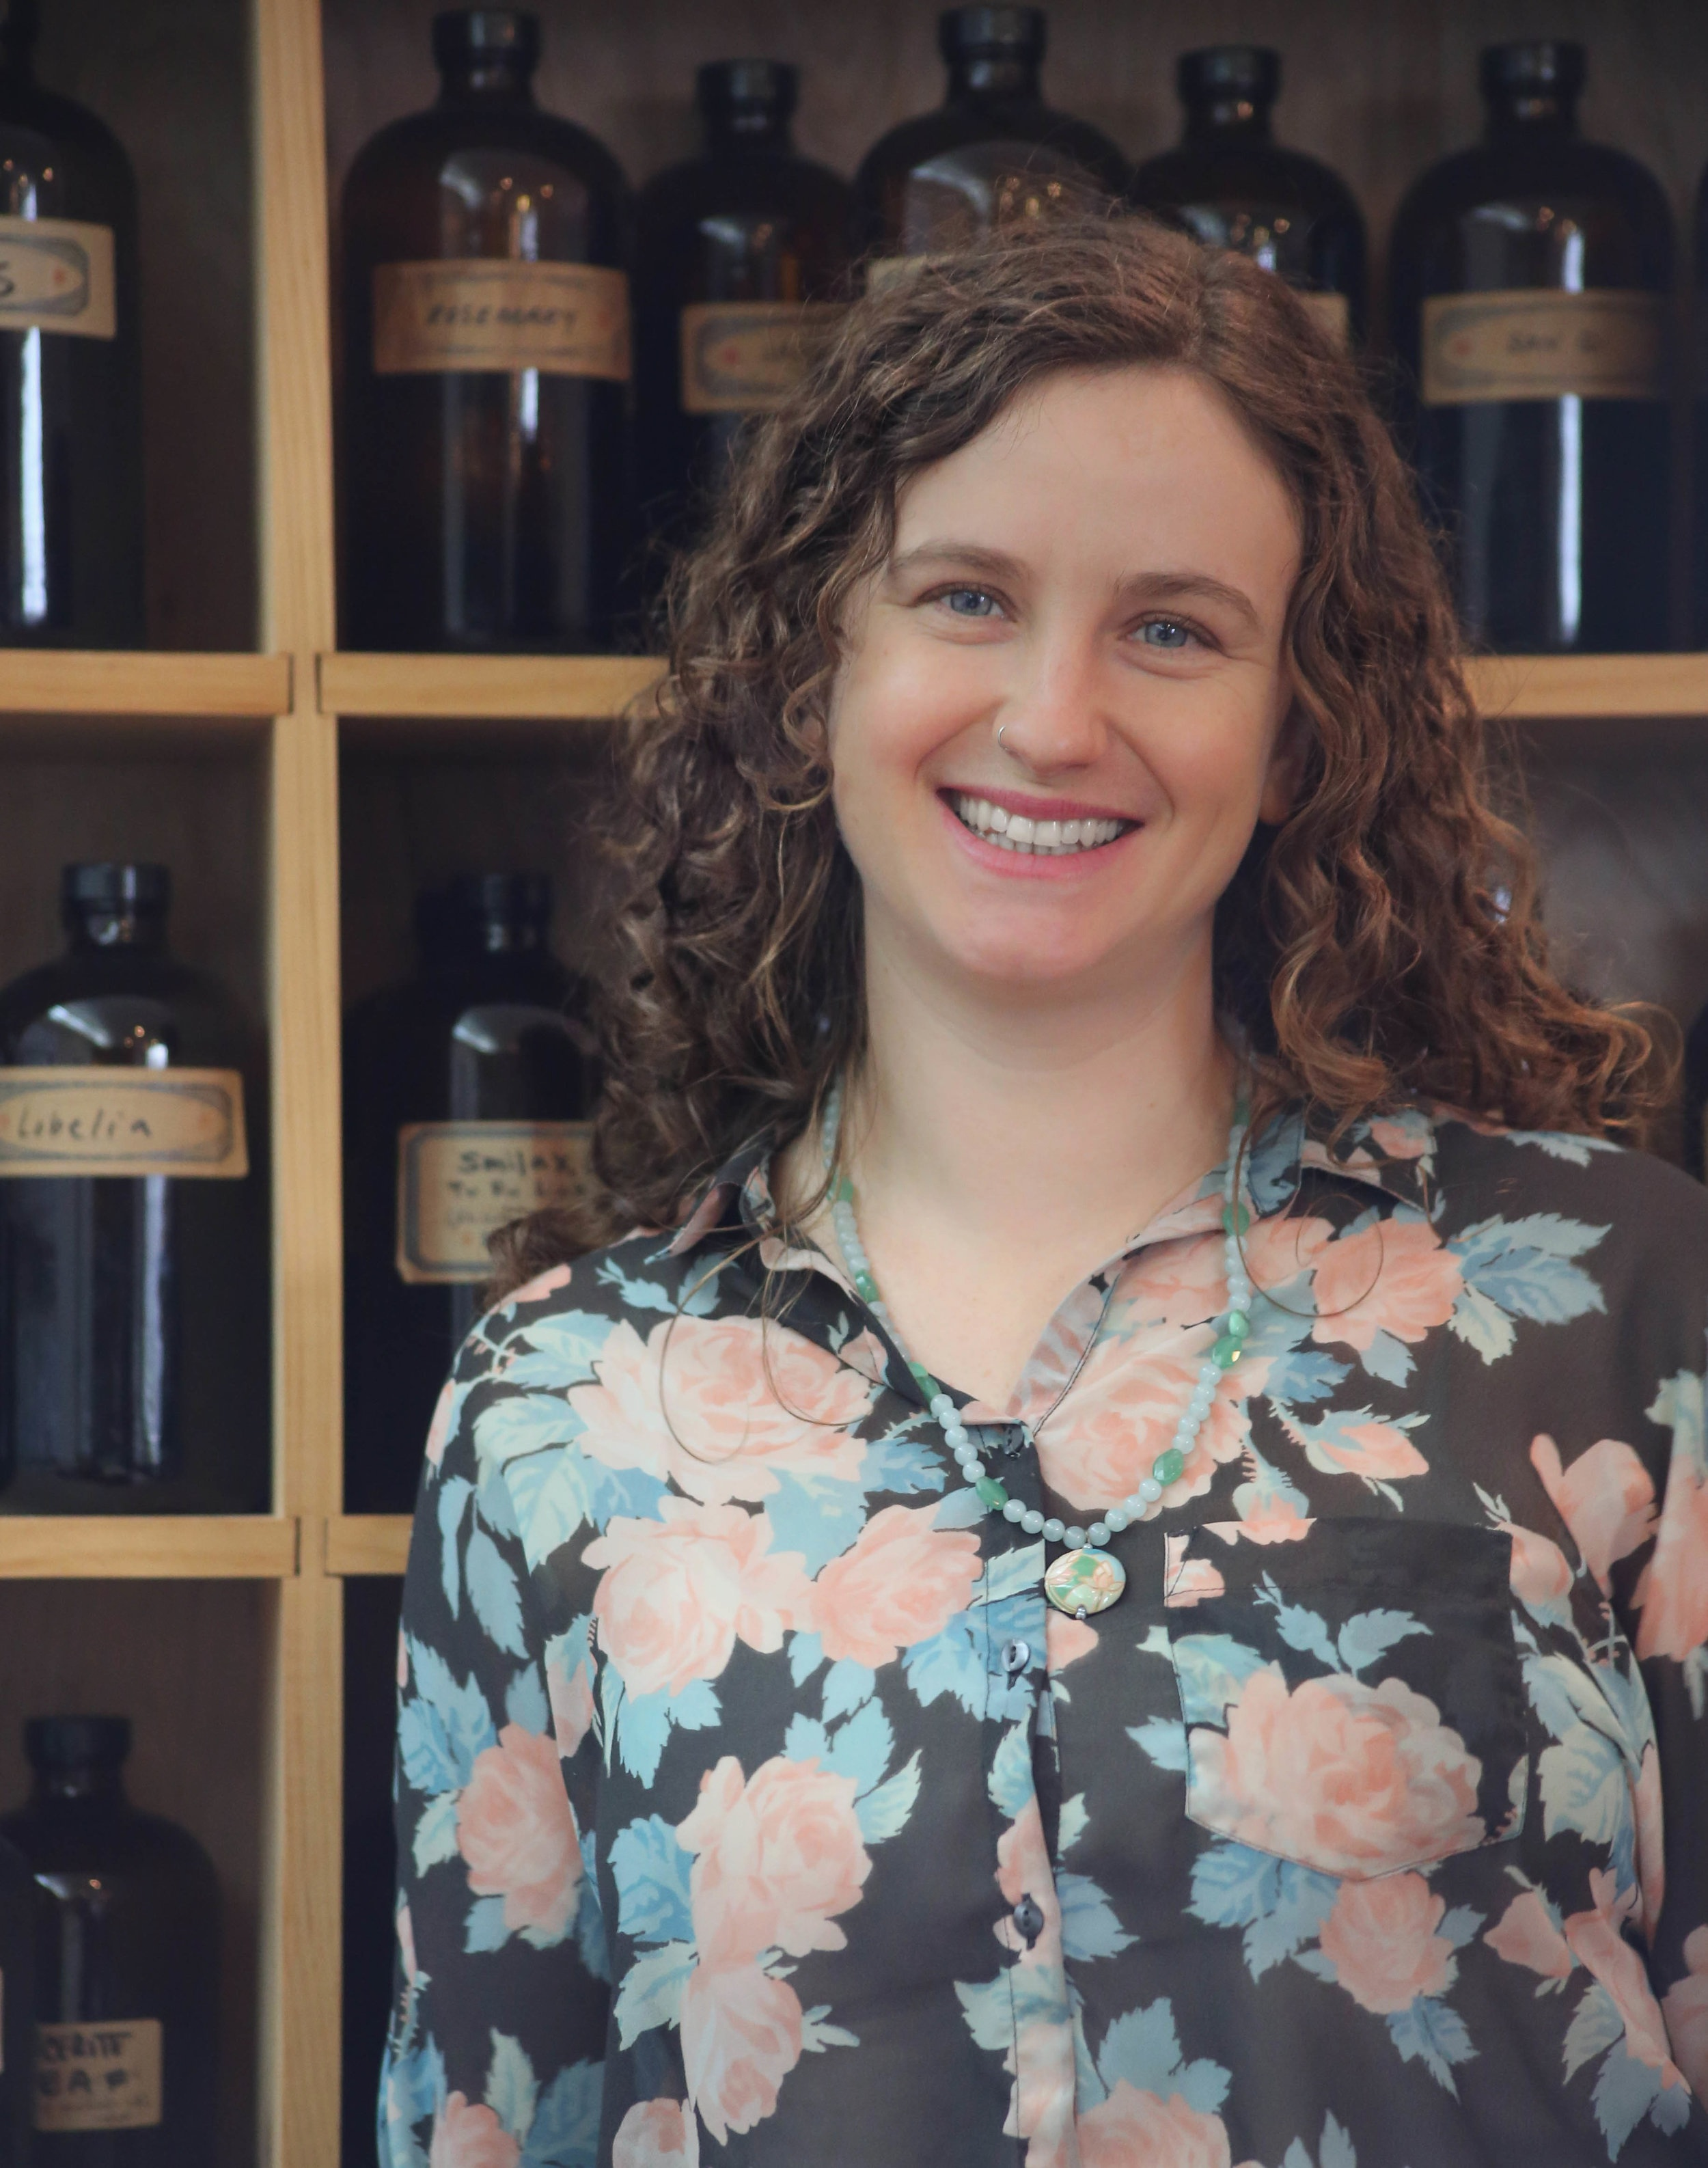 Emma Donnelly, Herbalist Co- Owner/Director of Blue Dragon Apothecary